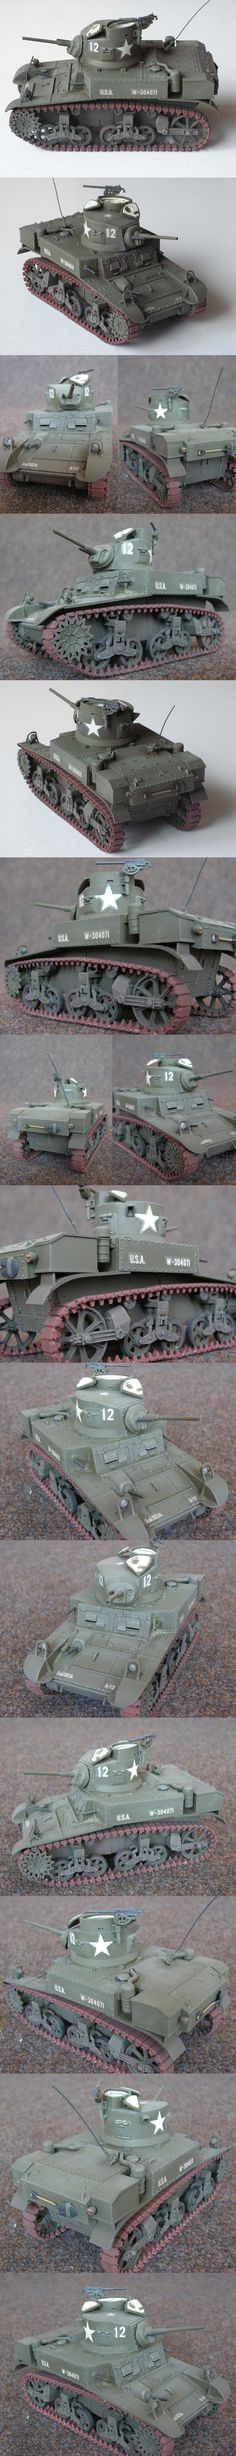 M3 Stuart 12 car, A Company, 32nd Armor Regiment, 3rd Armored Division Tamiya